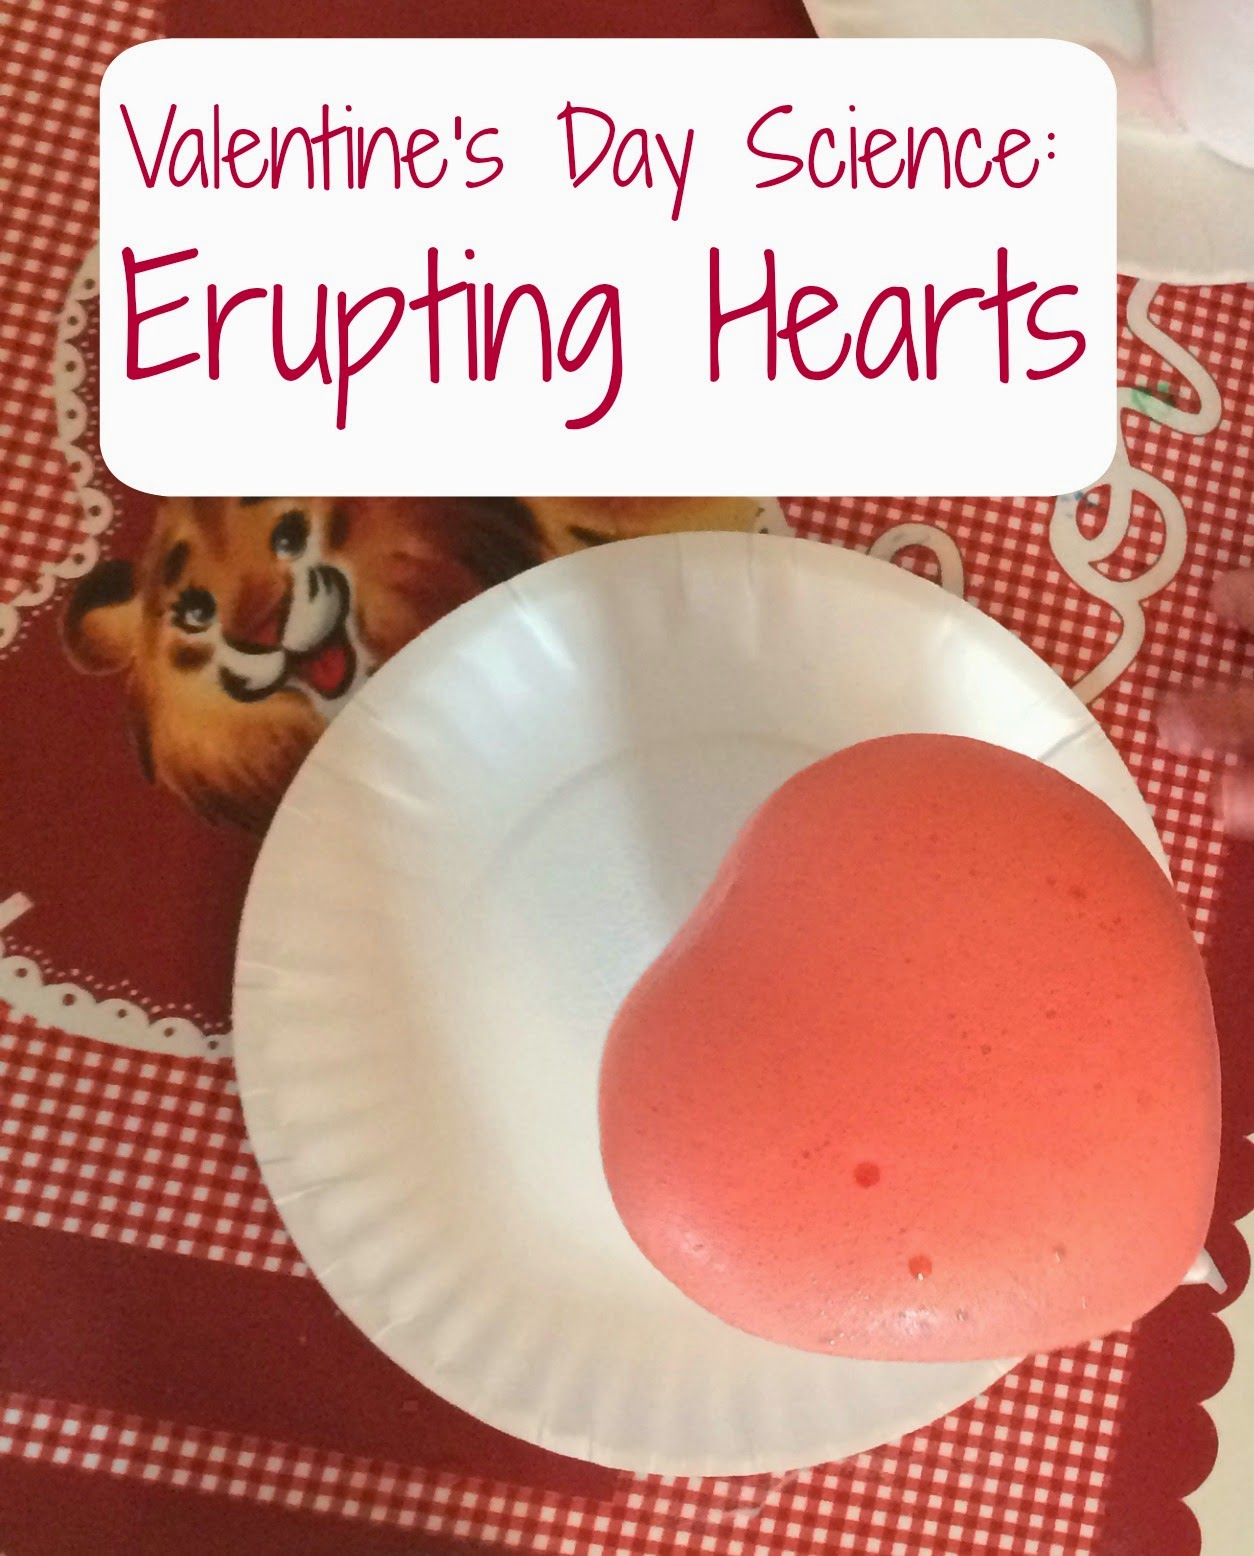 Schön Valentineu0027s Day Science Experiment: Erupting Hearts   The Chirping Moms